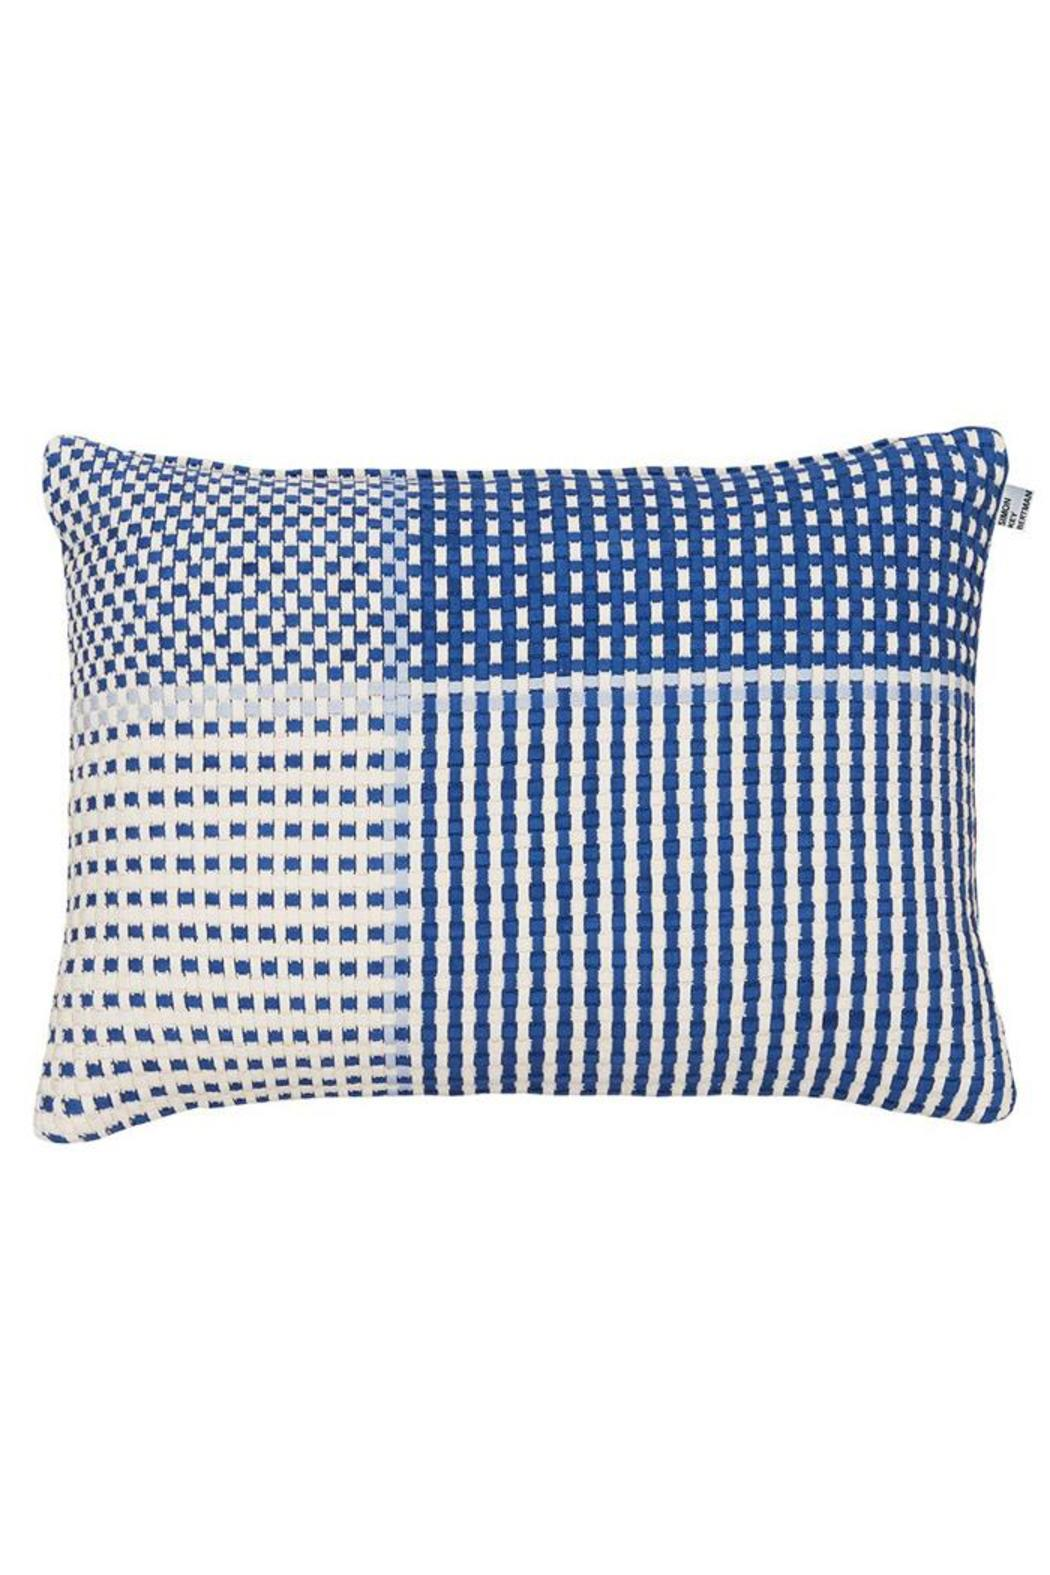 Simon Key Bertman Woven Shoelace Pillow - Front Full Image